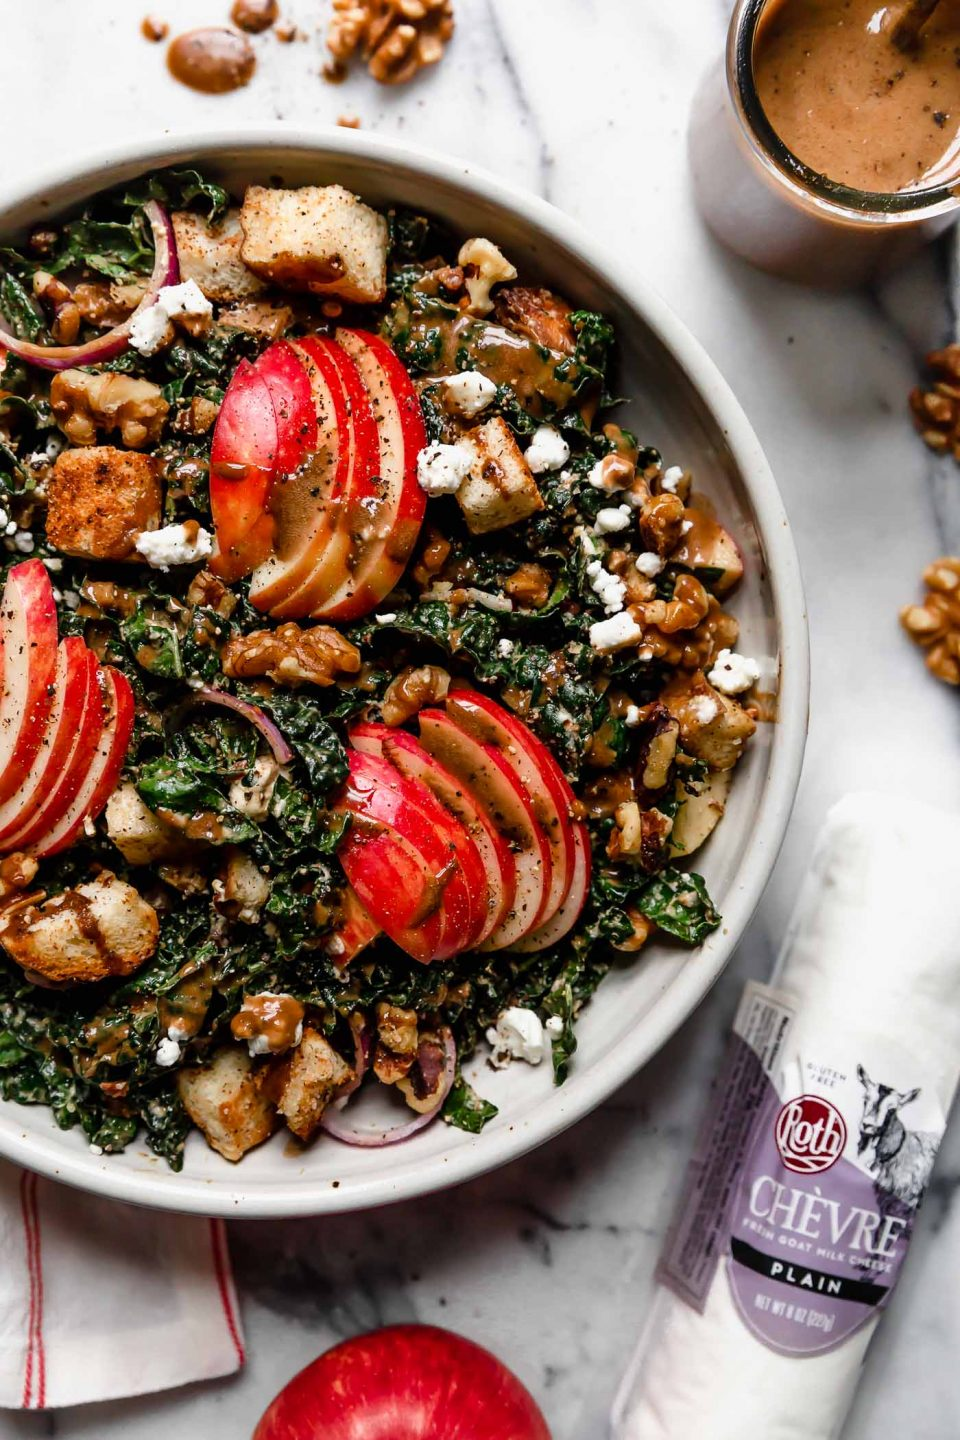 Tossed Autumn Kale salad in a cream ceramic bowl on a white marble surface. The salad is topped with clusters of sliced honeycrisp apples & croutons, & an extra drizzle of maple balsamic vinaigrette. An 8 oz log of Roth Plain Chèvre is sitting next to the salad.